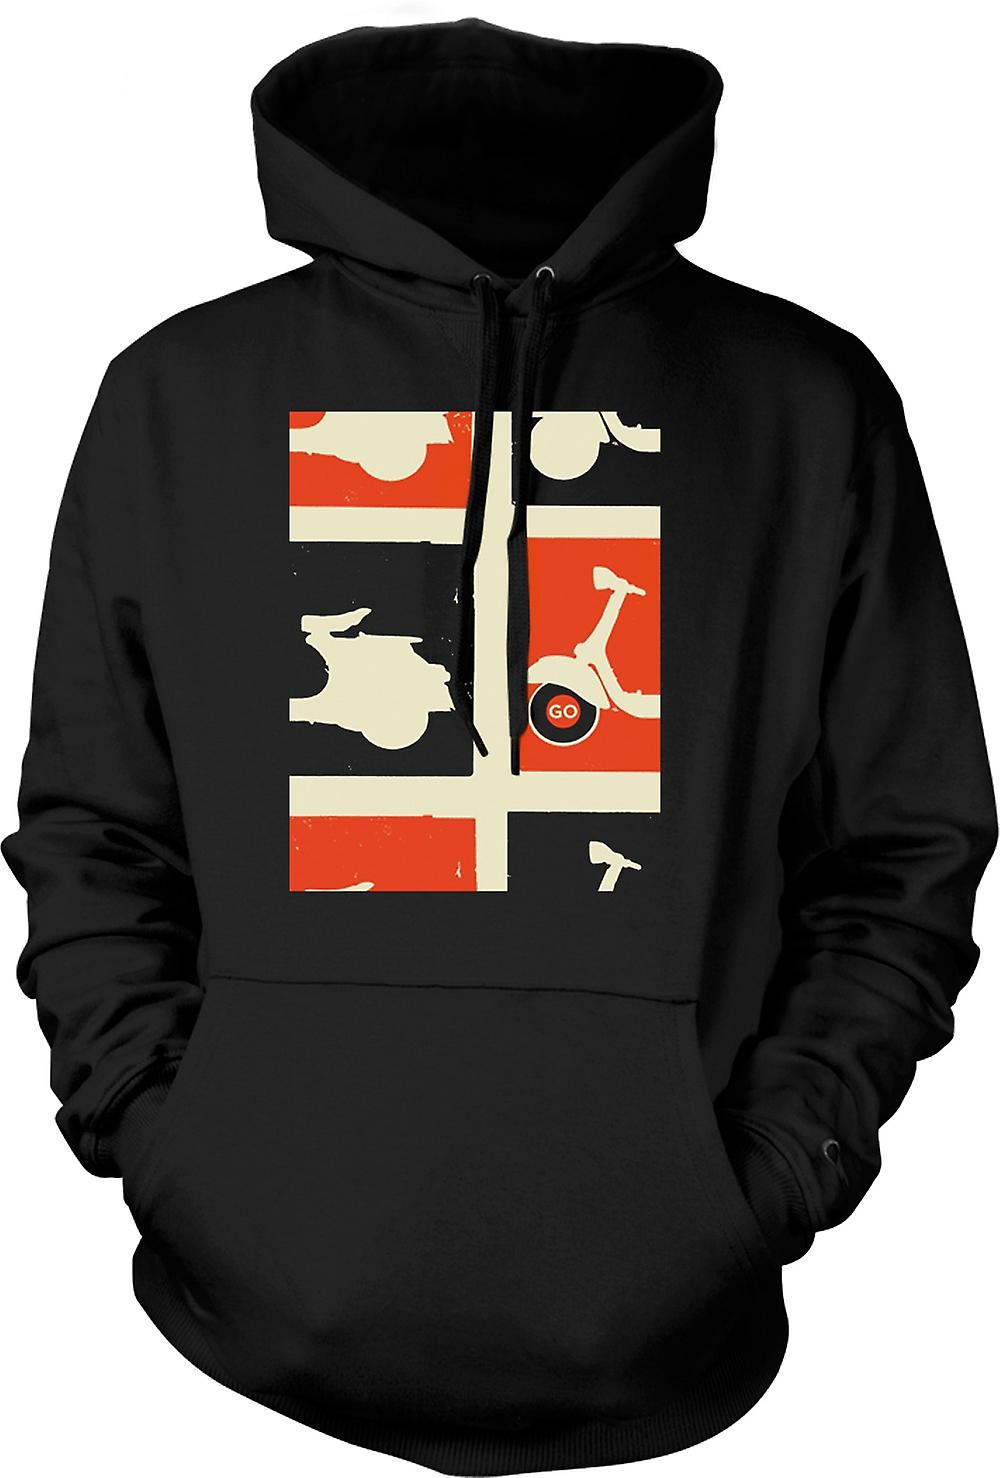 Mens Hoodie - Vespa Scooter - Pop Art Poster Go